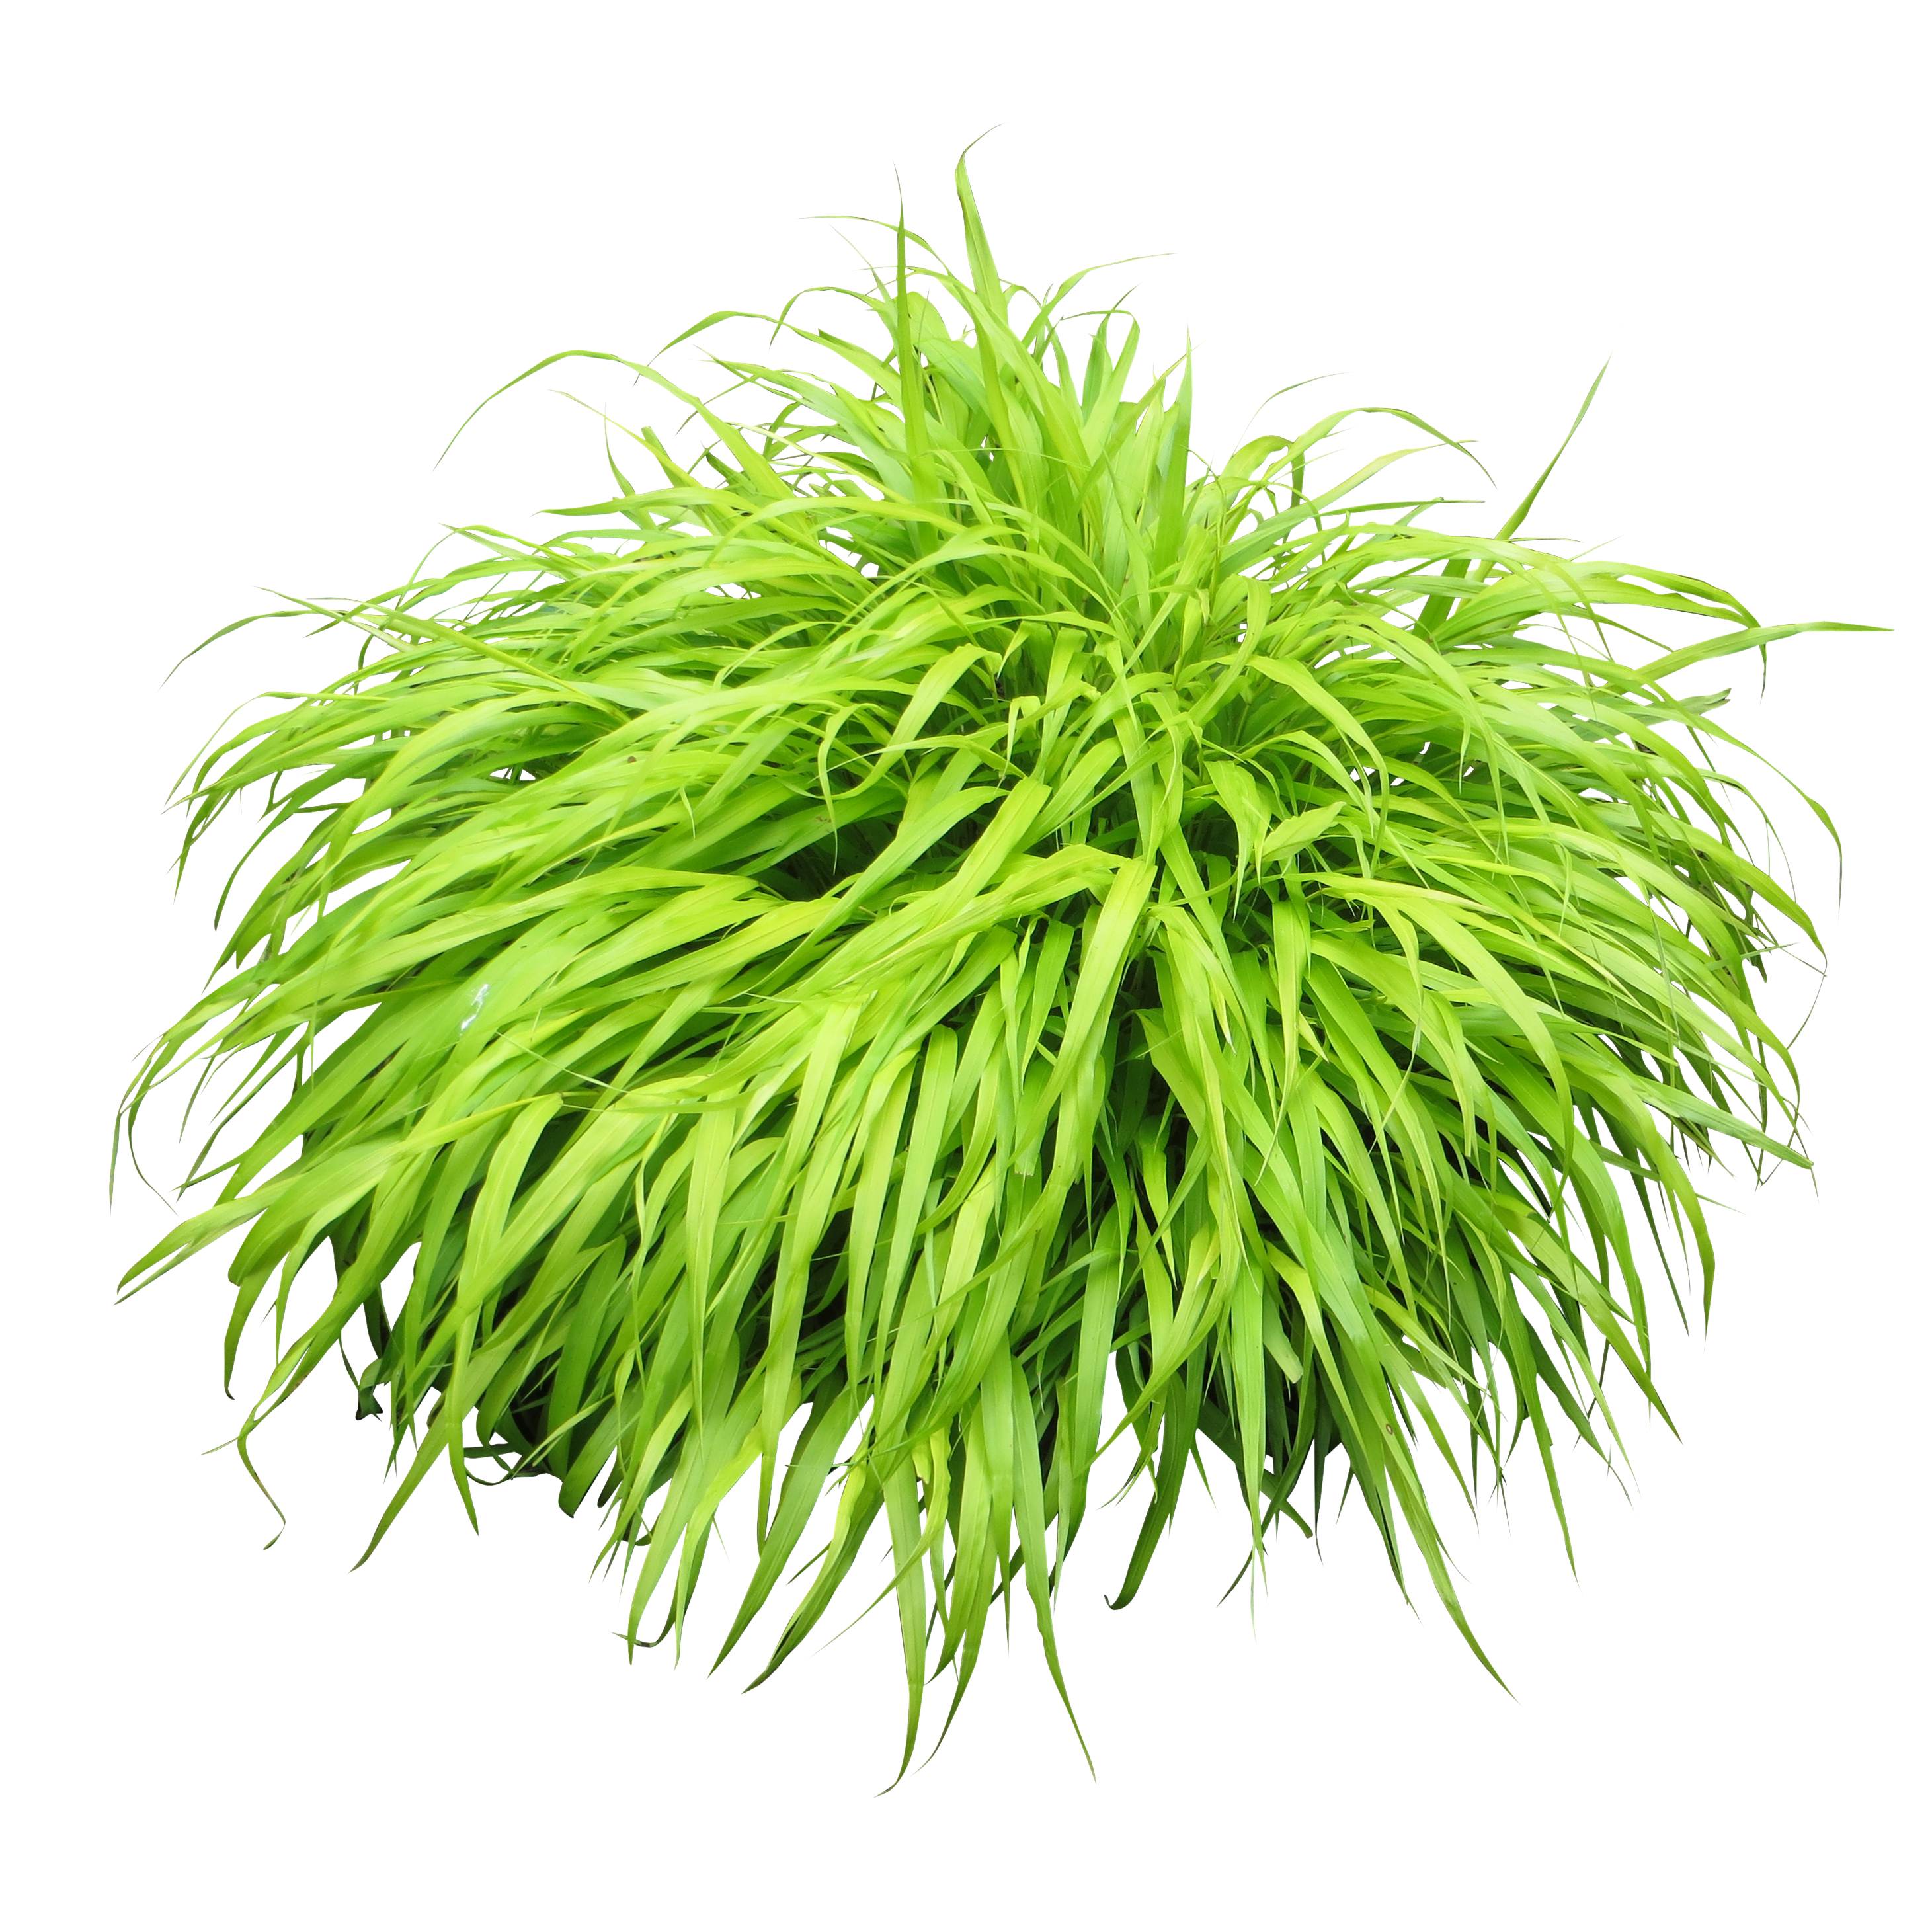 Hill clipart bush. Image result for reference